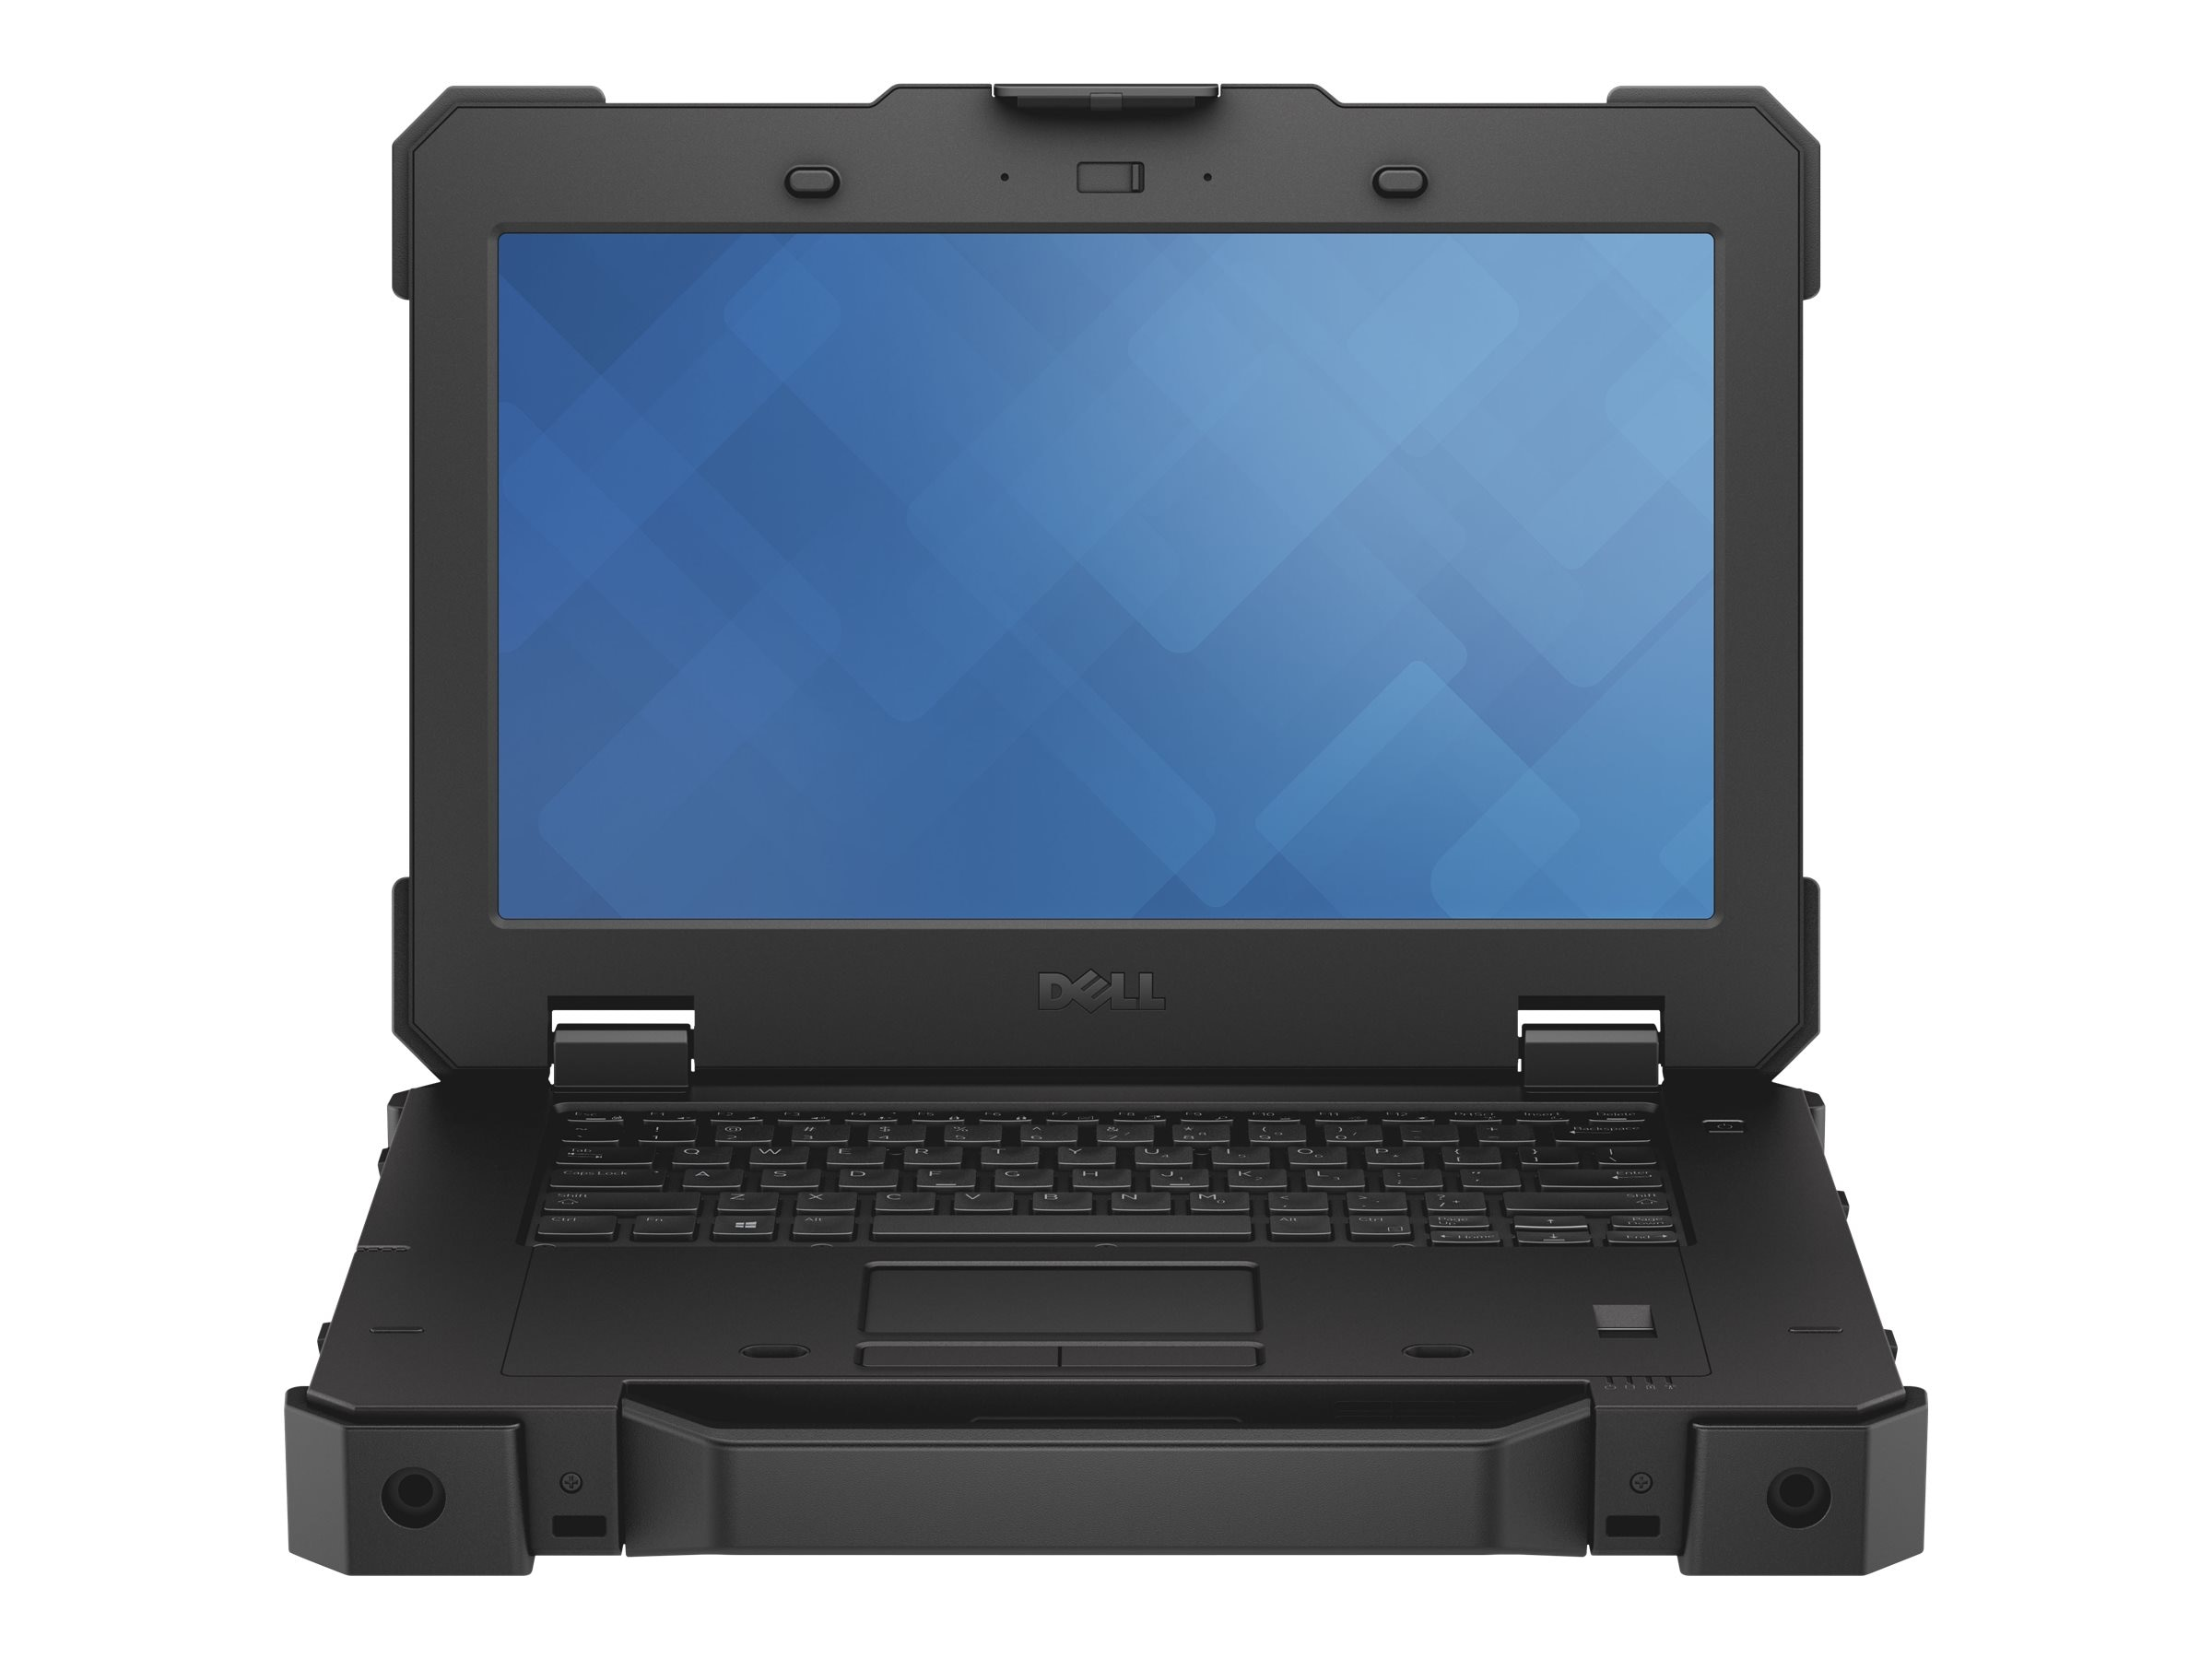 Dell Latitude 14 Rugged Extreme 7414 2.4GHz Core i5 14in display, VM03T